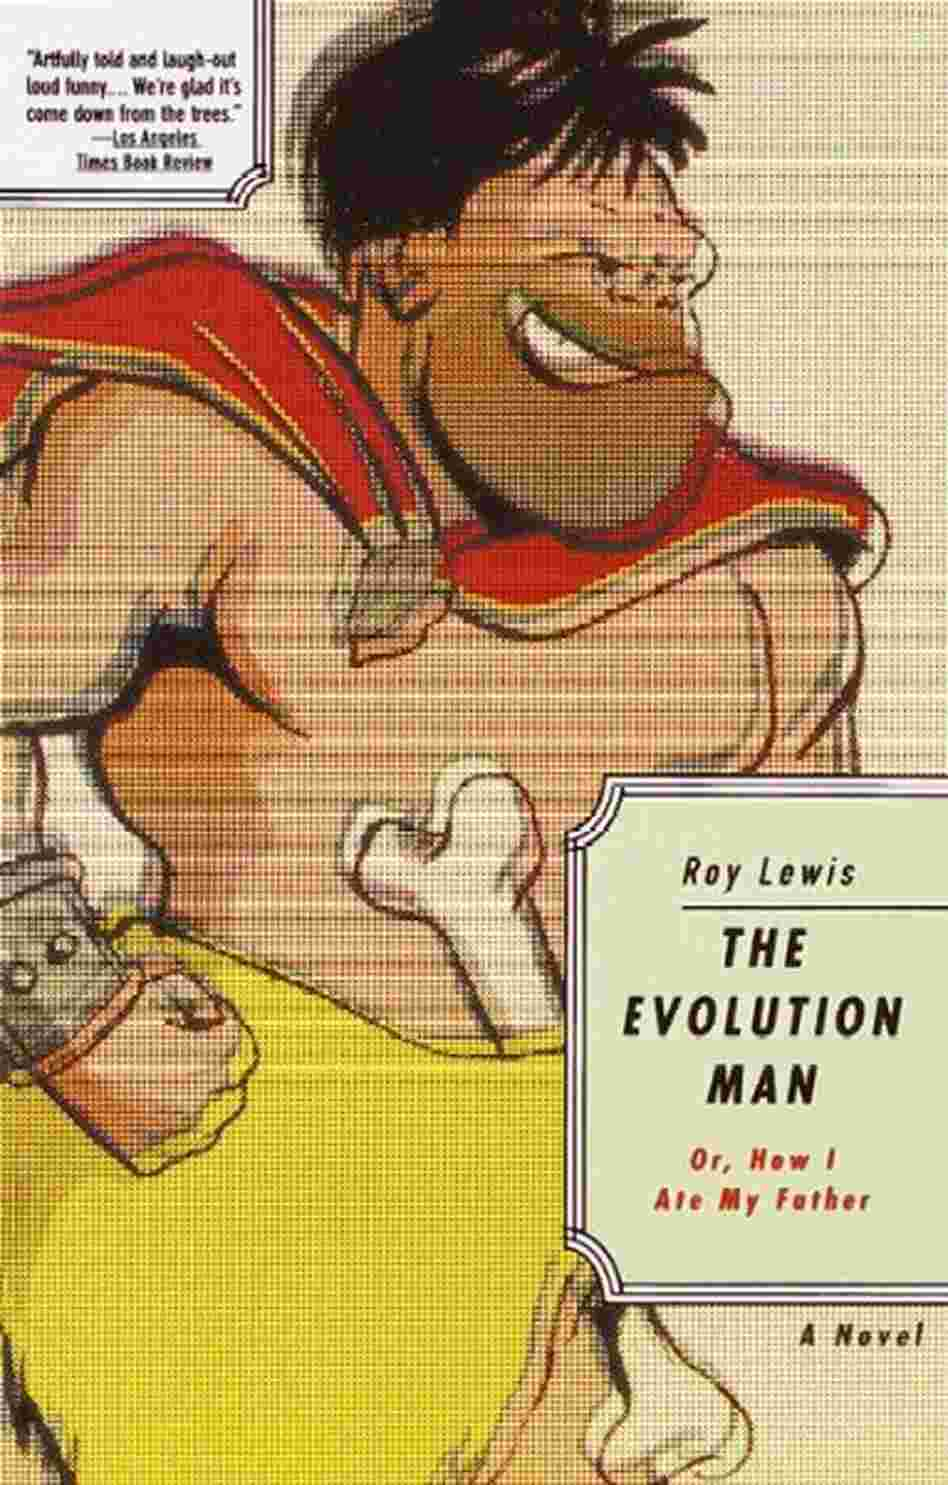 The Evolution Man, Or, How I Ate My Father